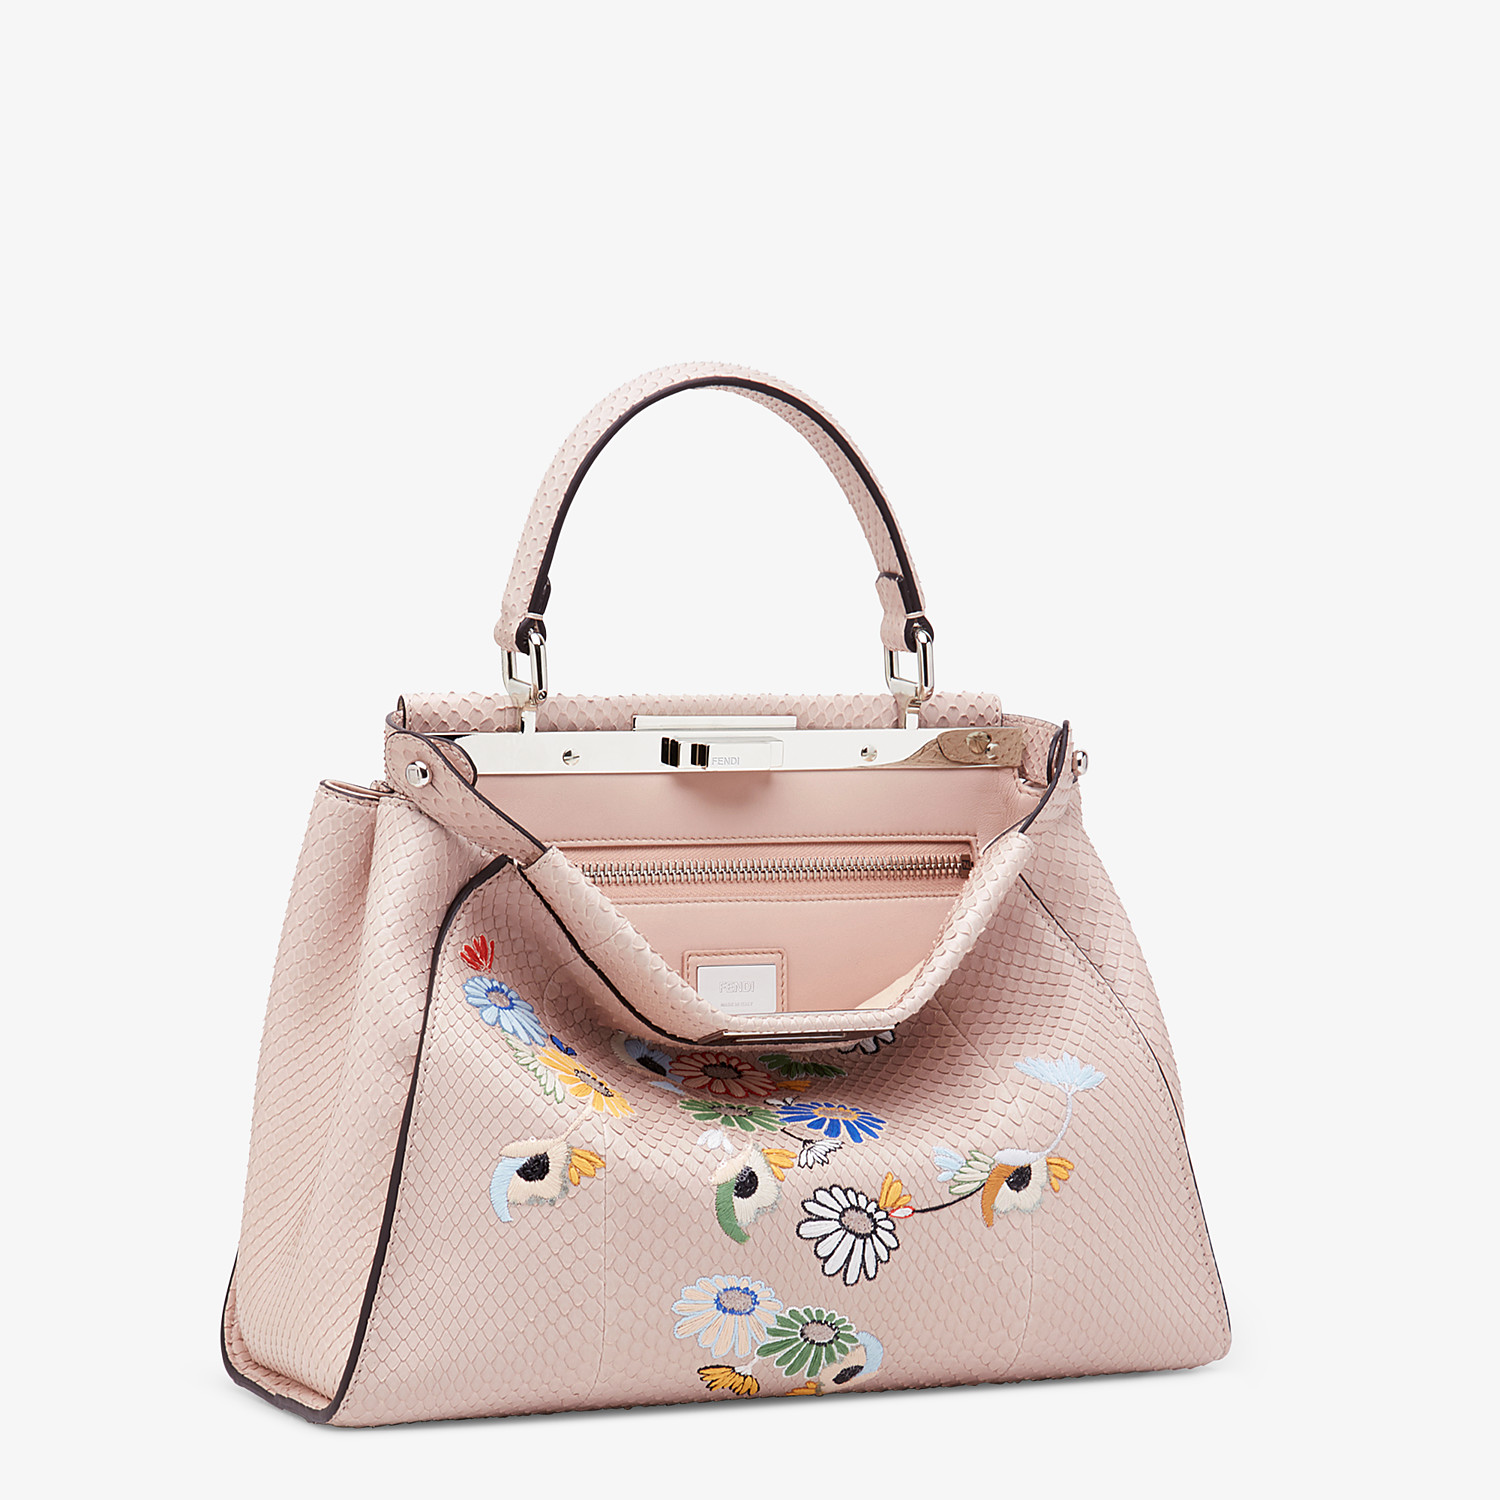 FENDI PEEKABOO ICONIC MEDIUM - Pink python leather bag - view 2 detail